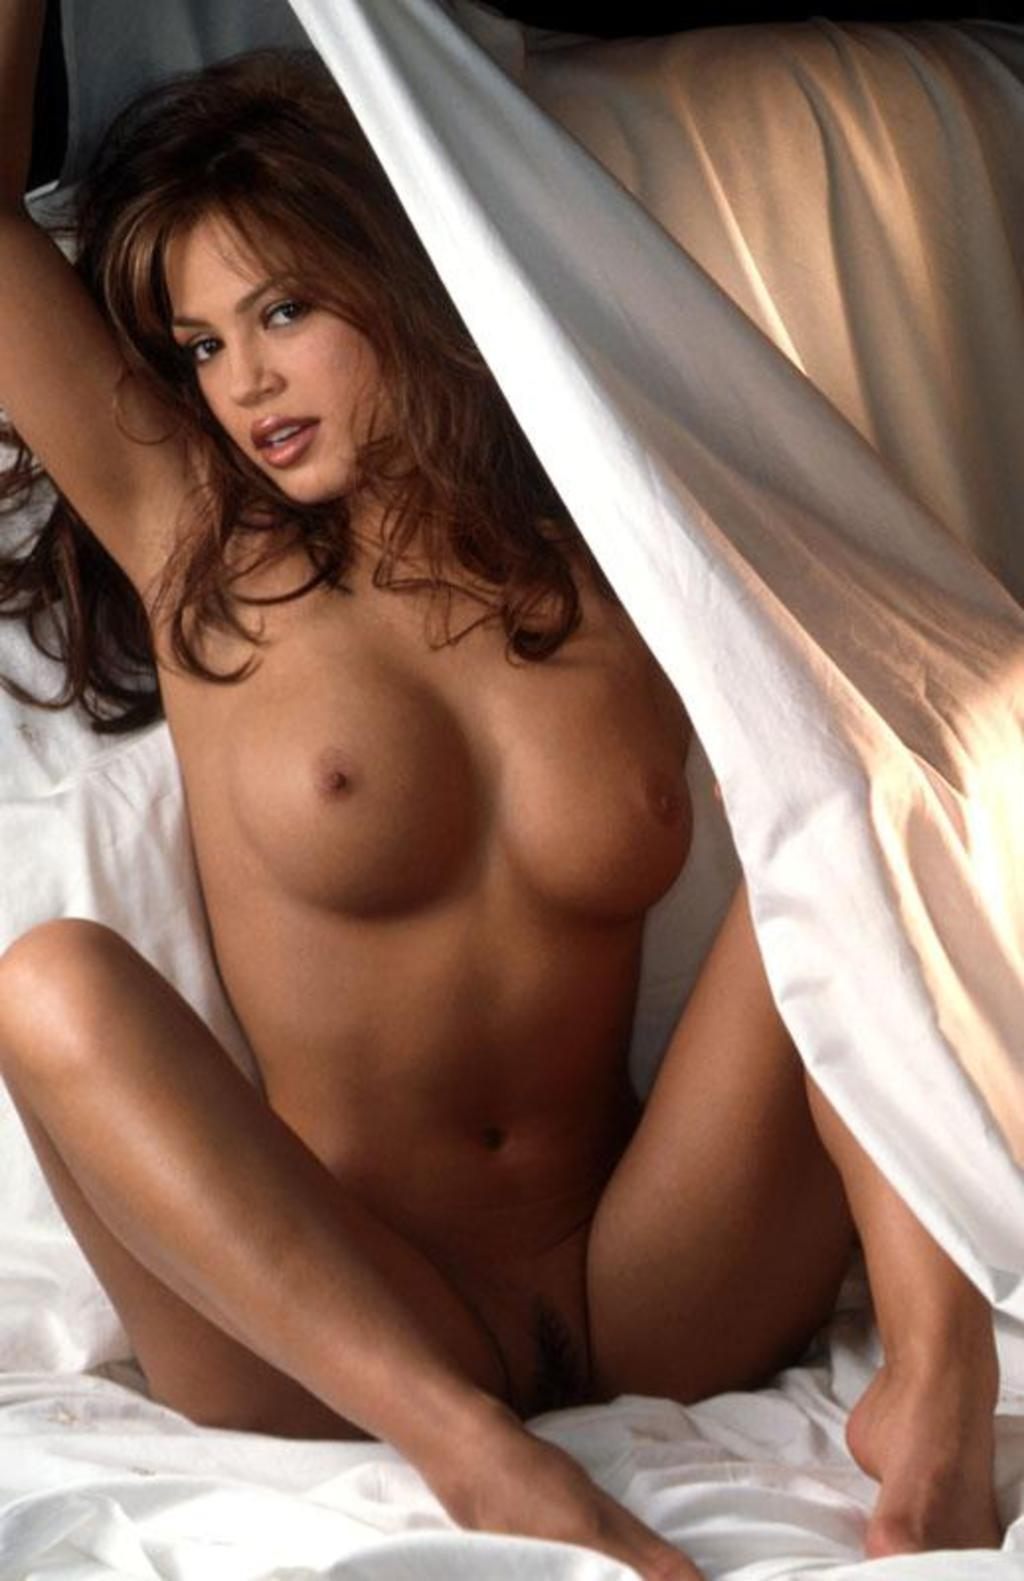 Muscle jodi ann paterson playboy playmate nude images feet